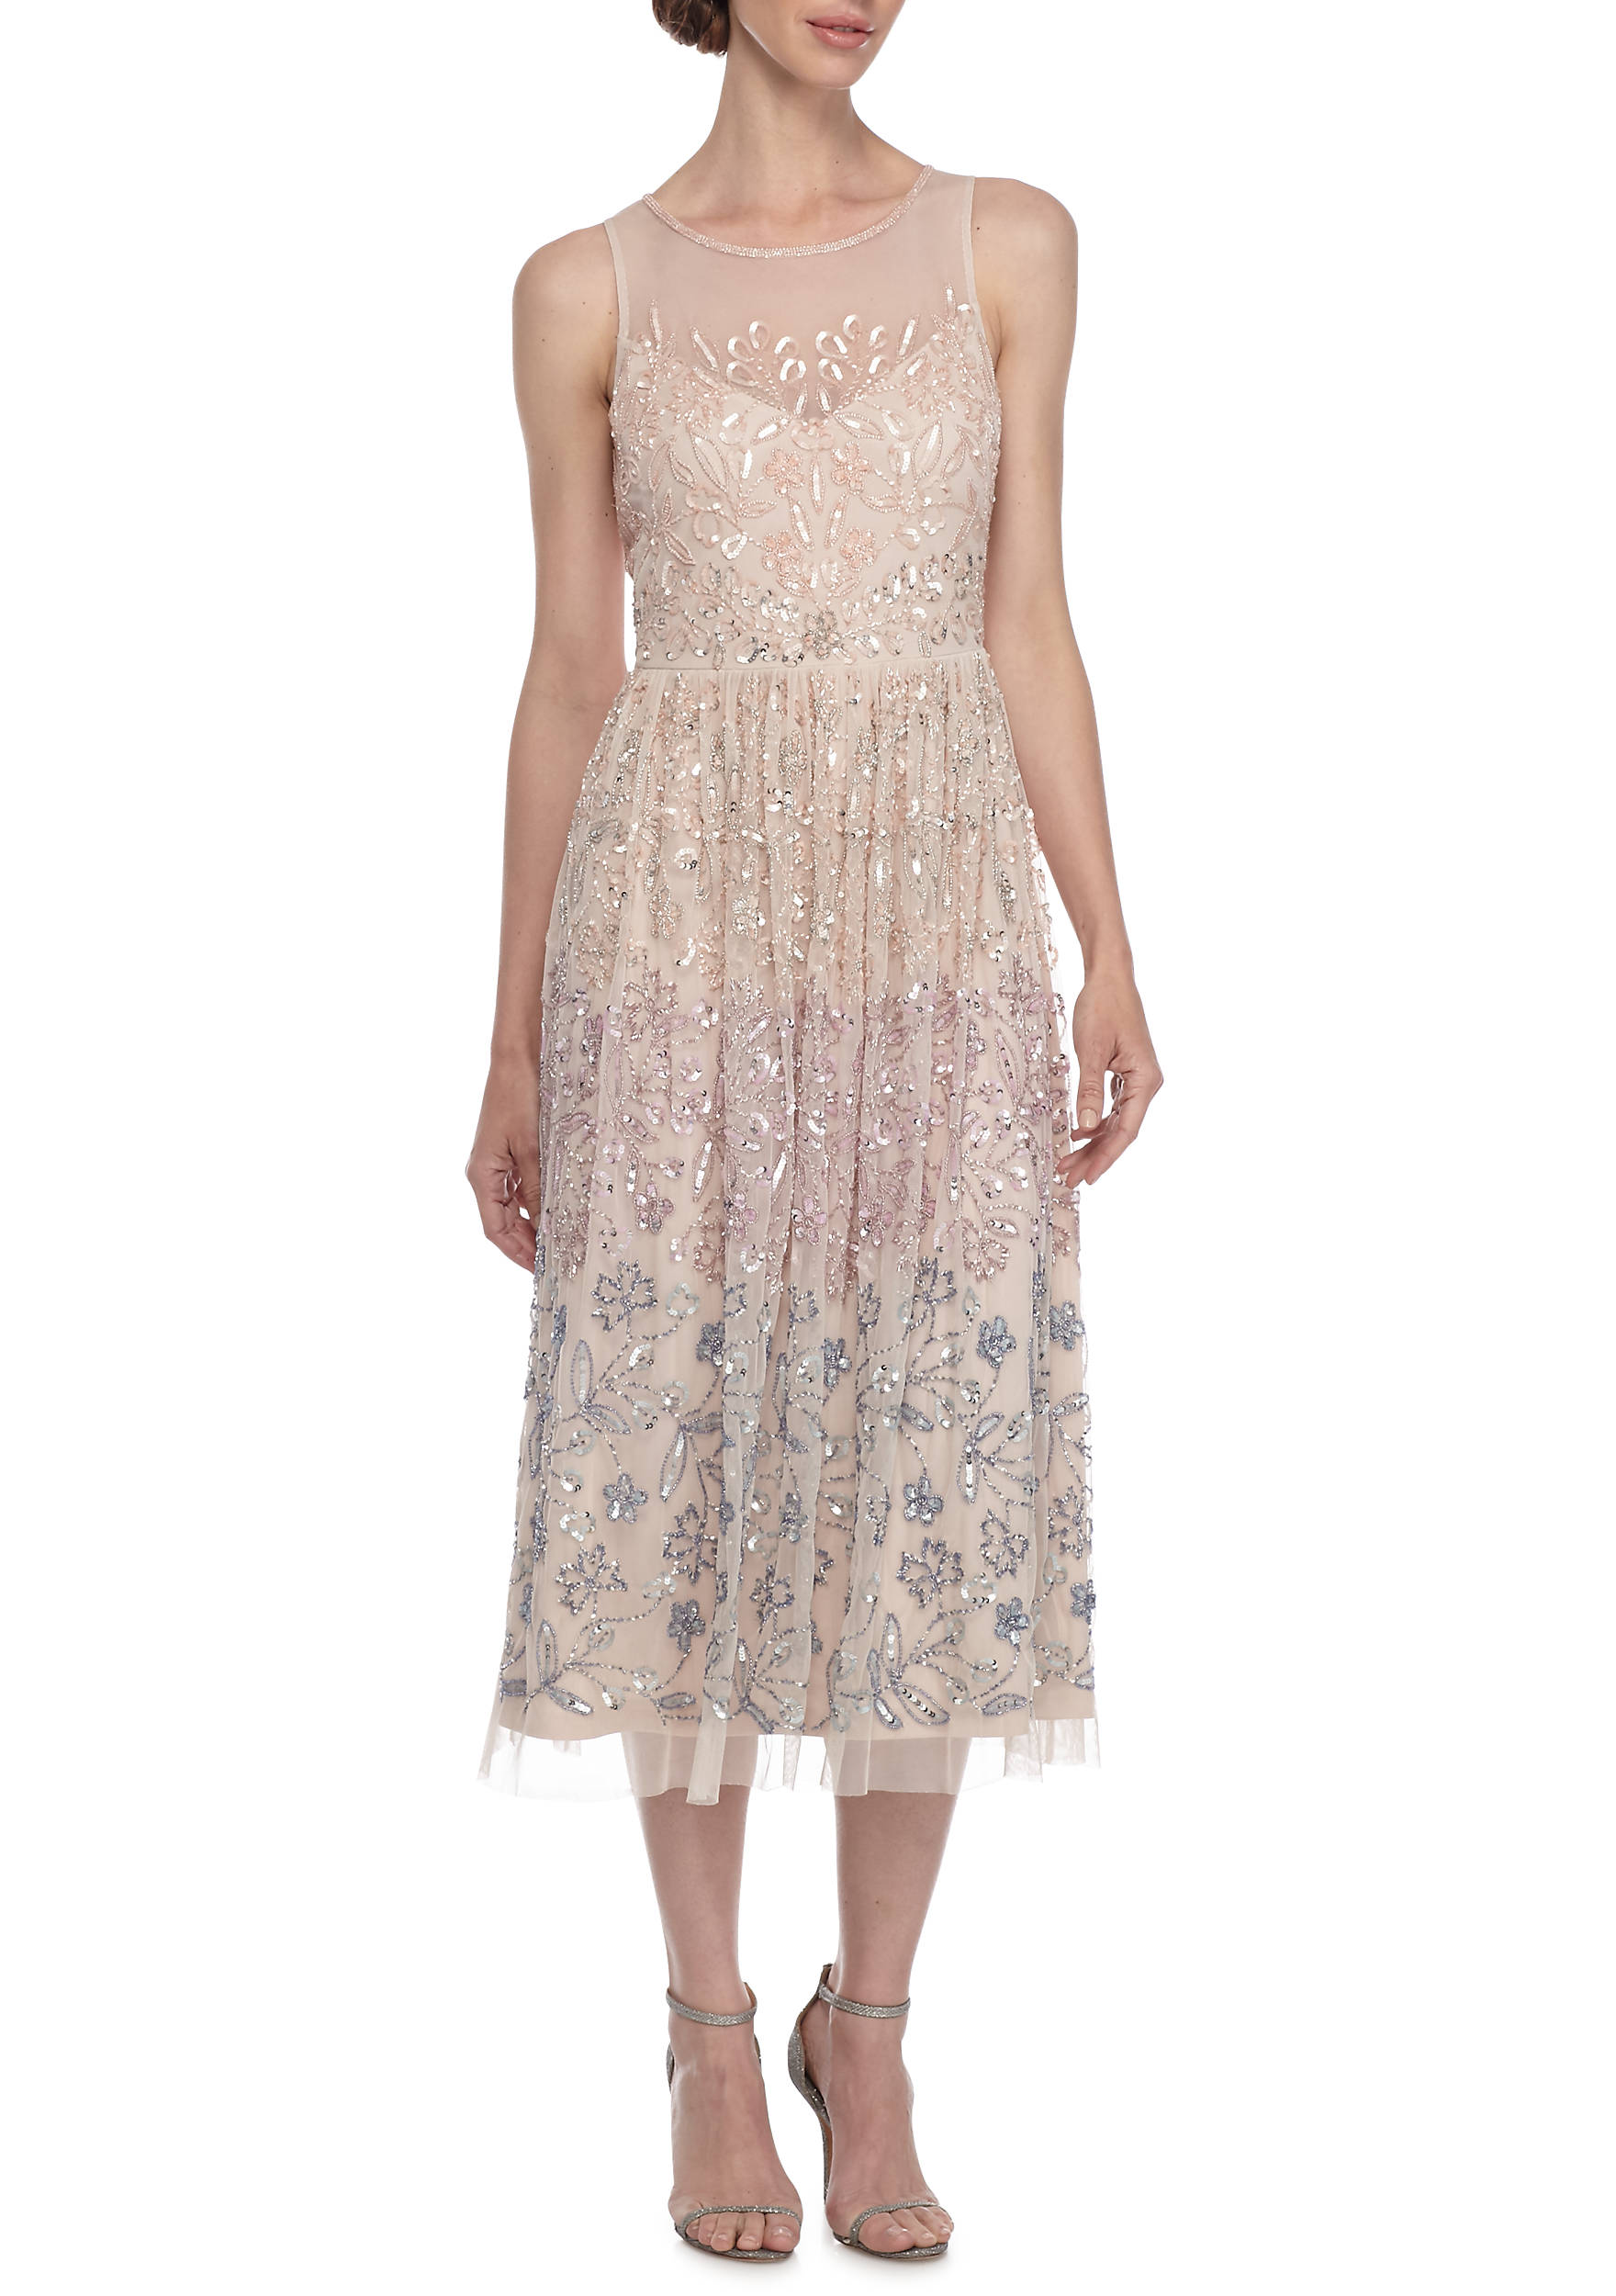 Adrianna Papell Bead and Sequin Mesh Cocktail Dress   belk